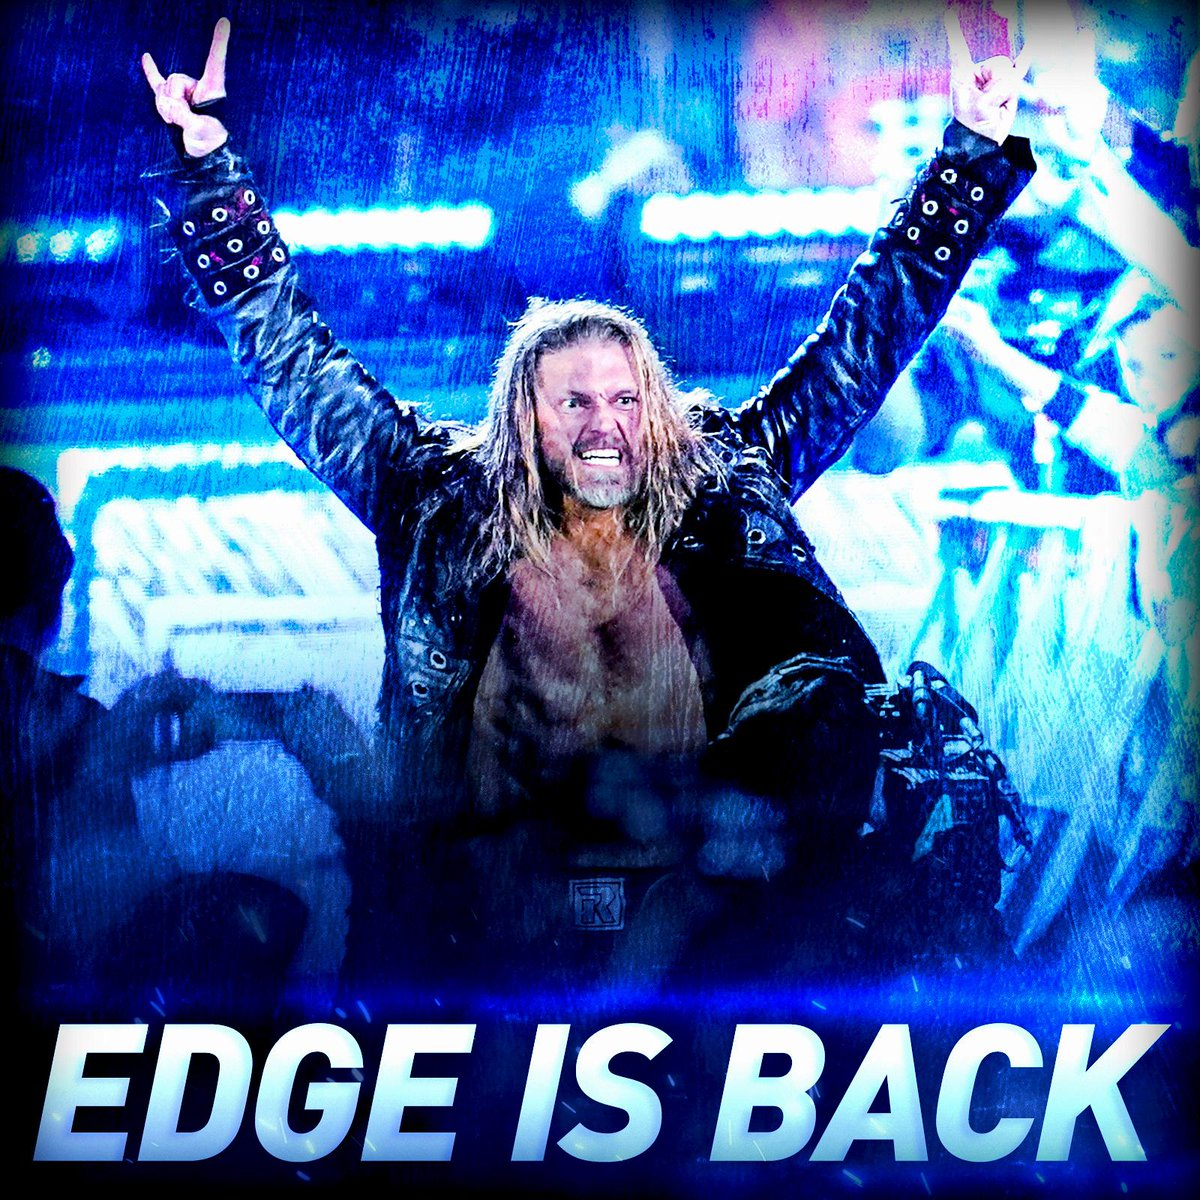 Never say never. The #RatedRSuperstar @EdgeRatedR is BACK! #MensRumble #RoyalRumble 🤘🤘